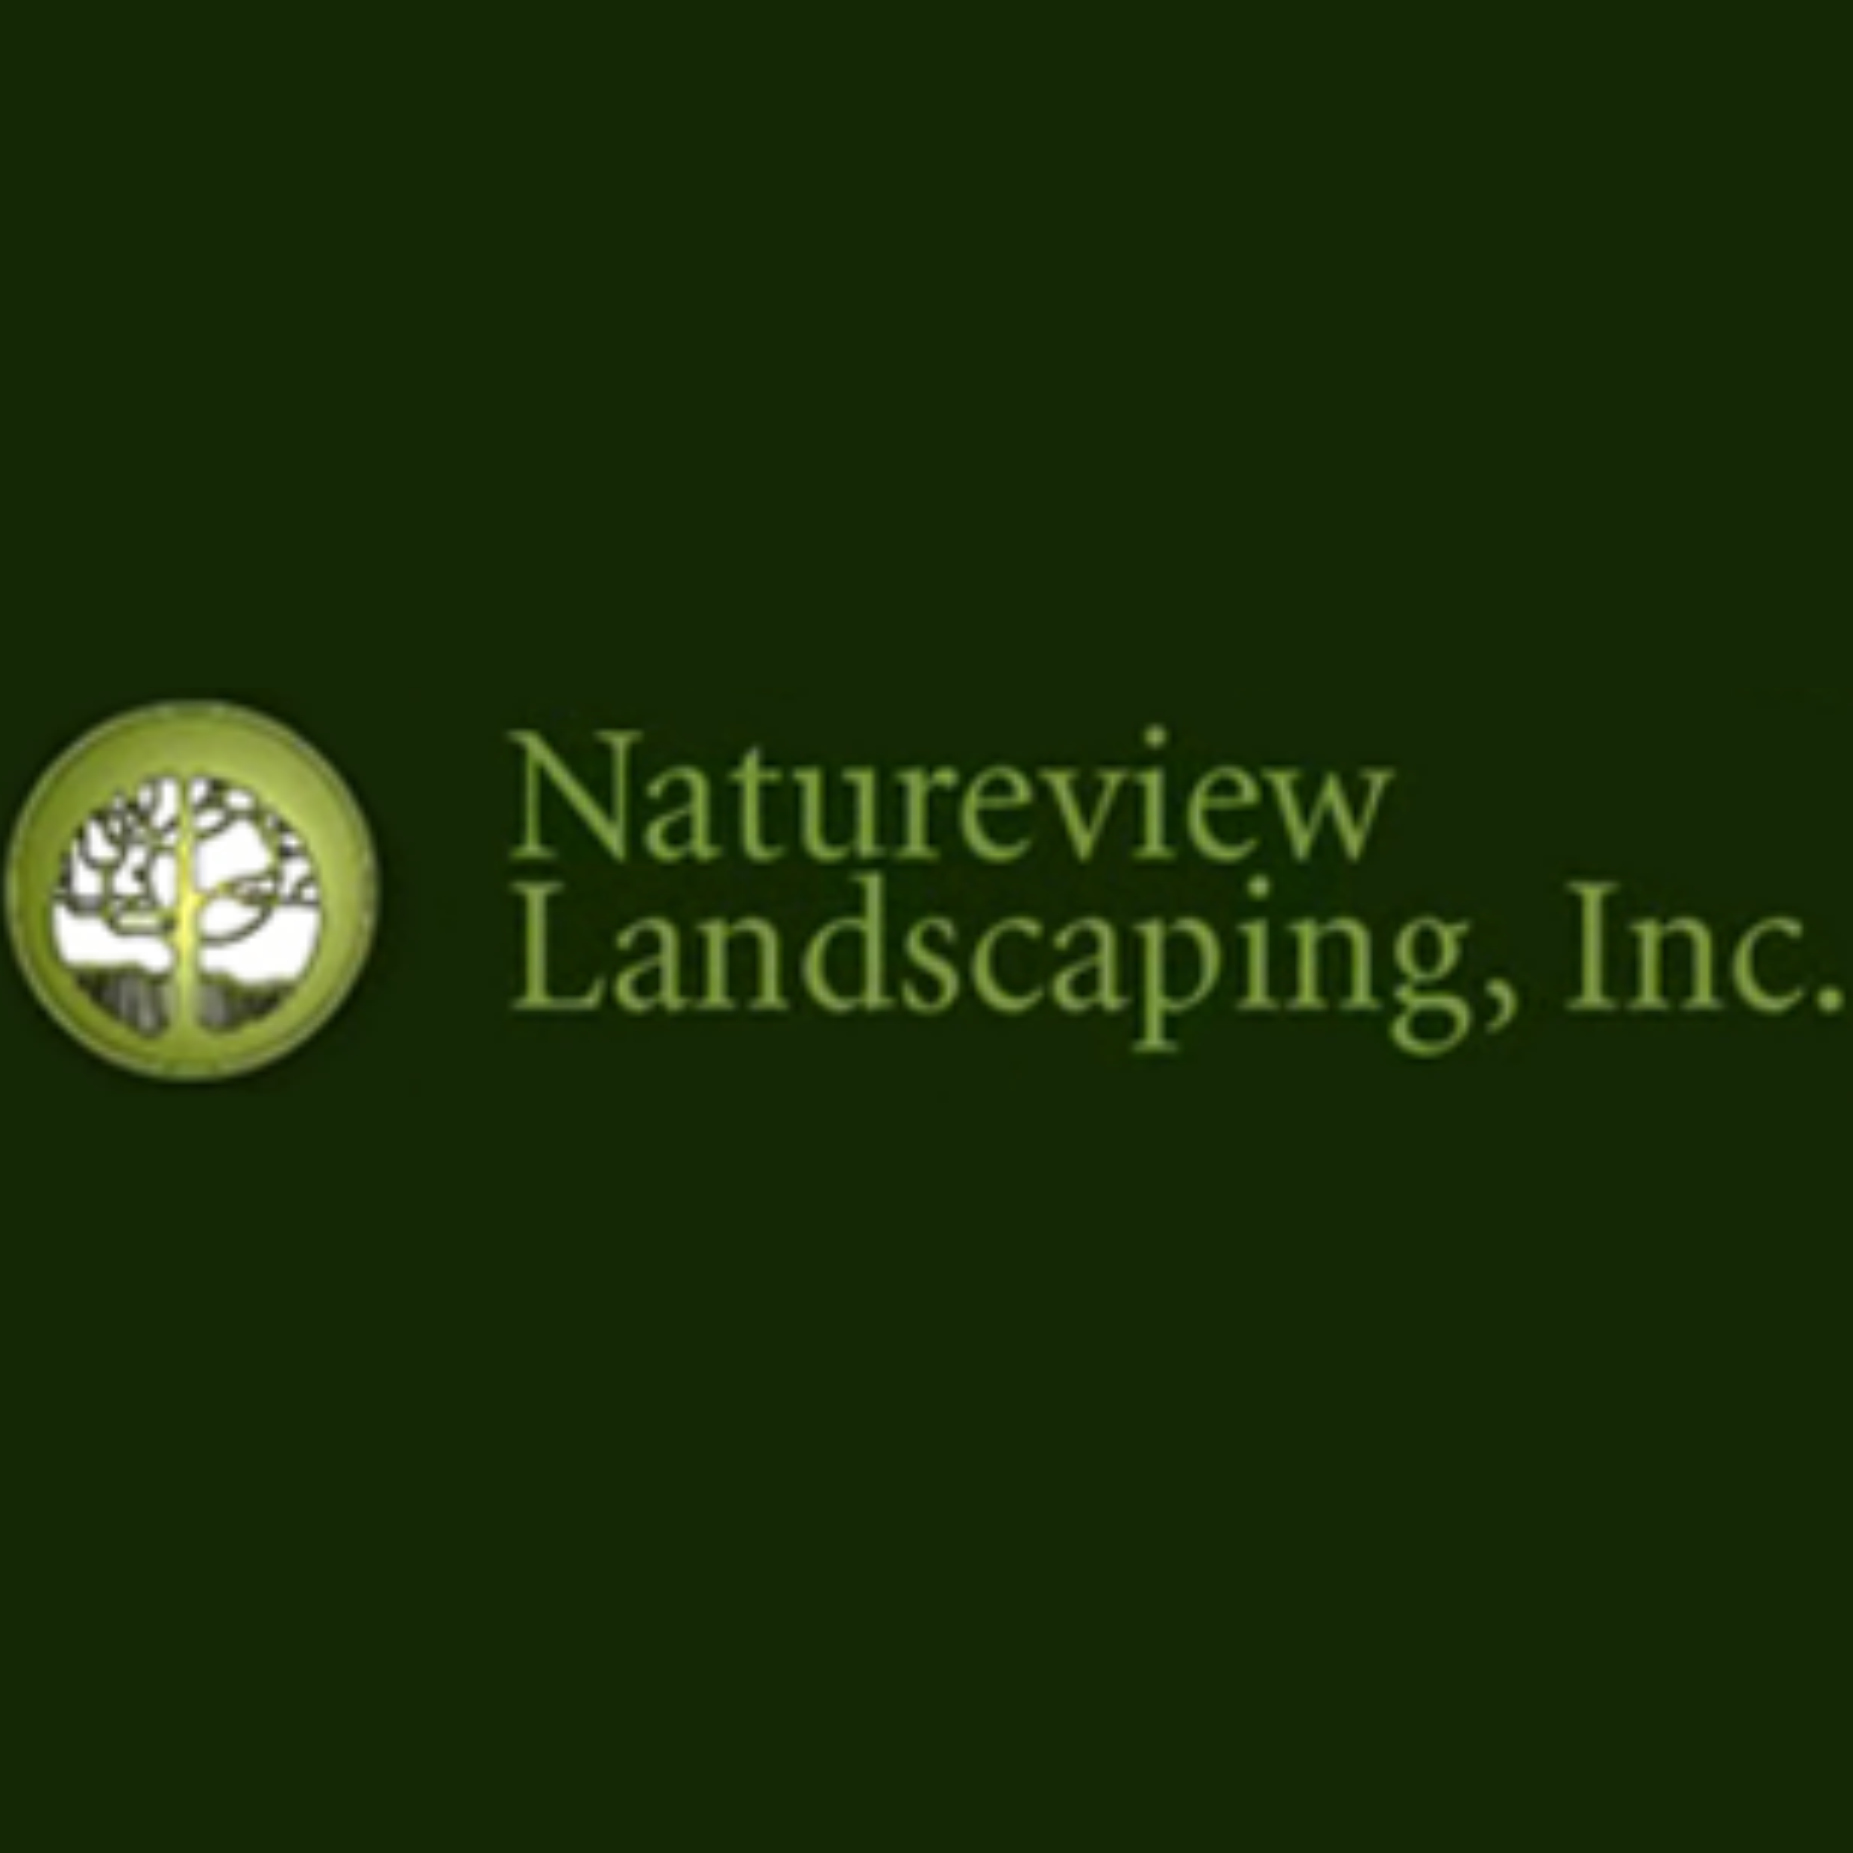 Natureview Landscaping, Inc.